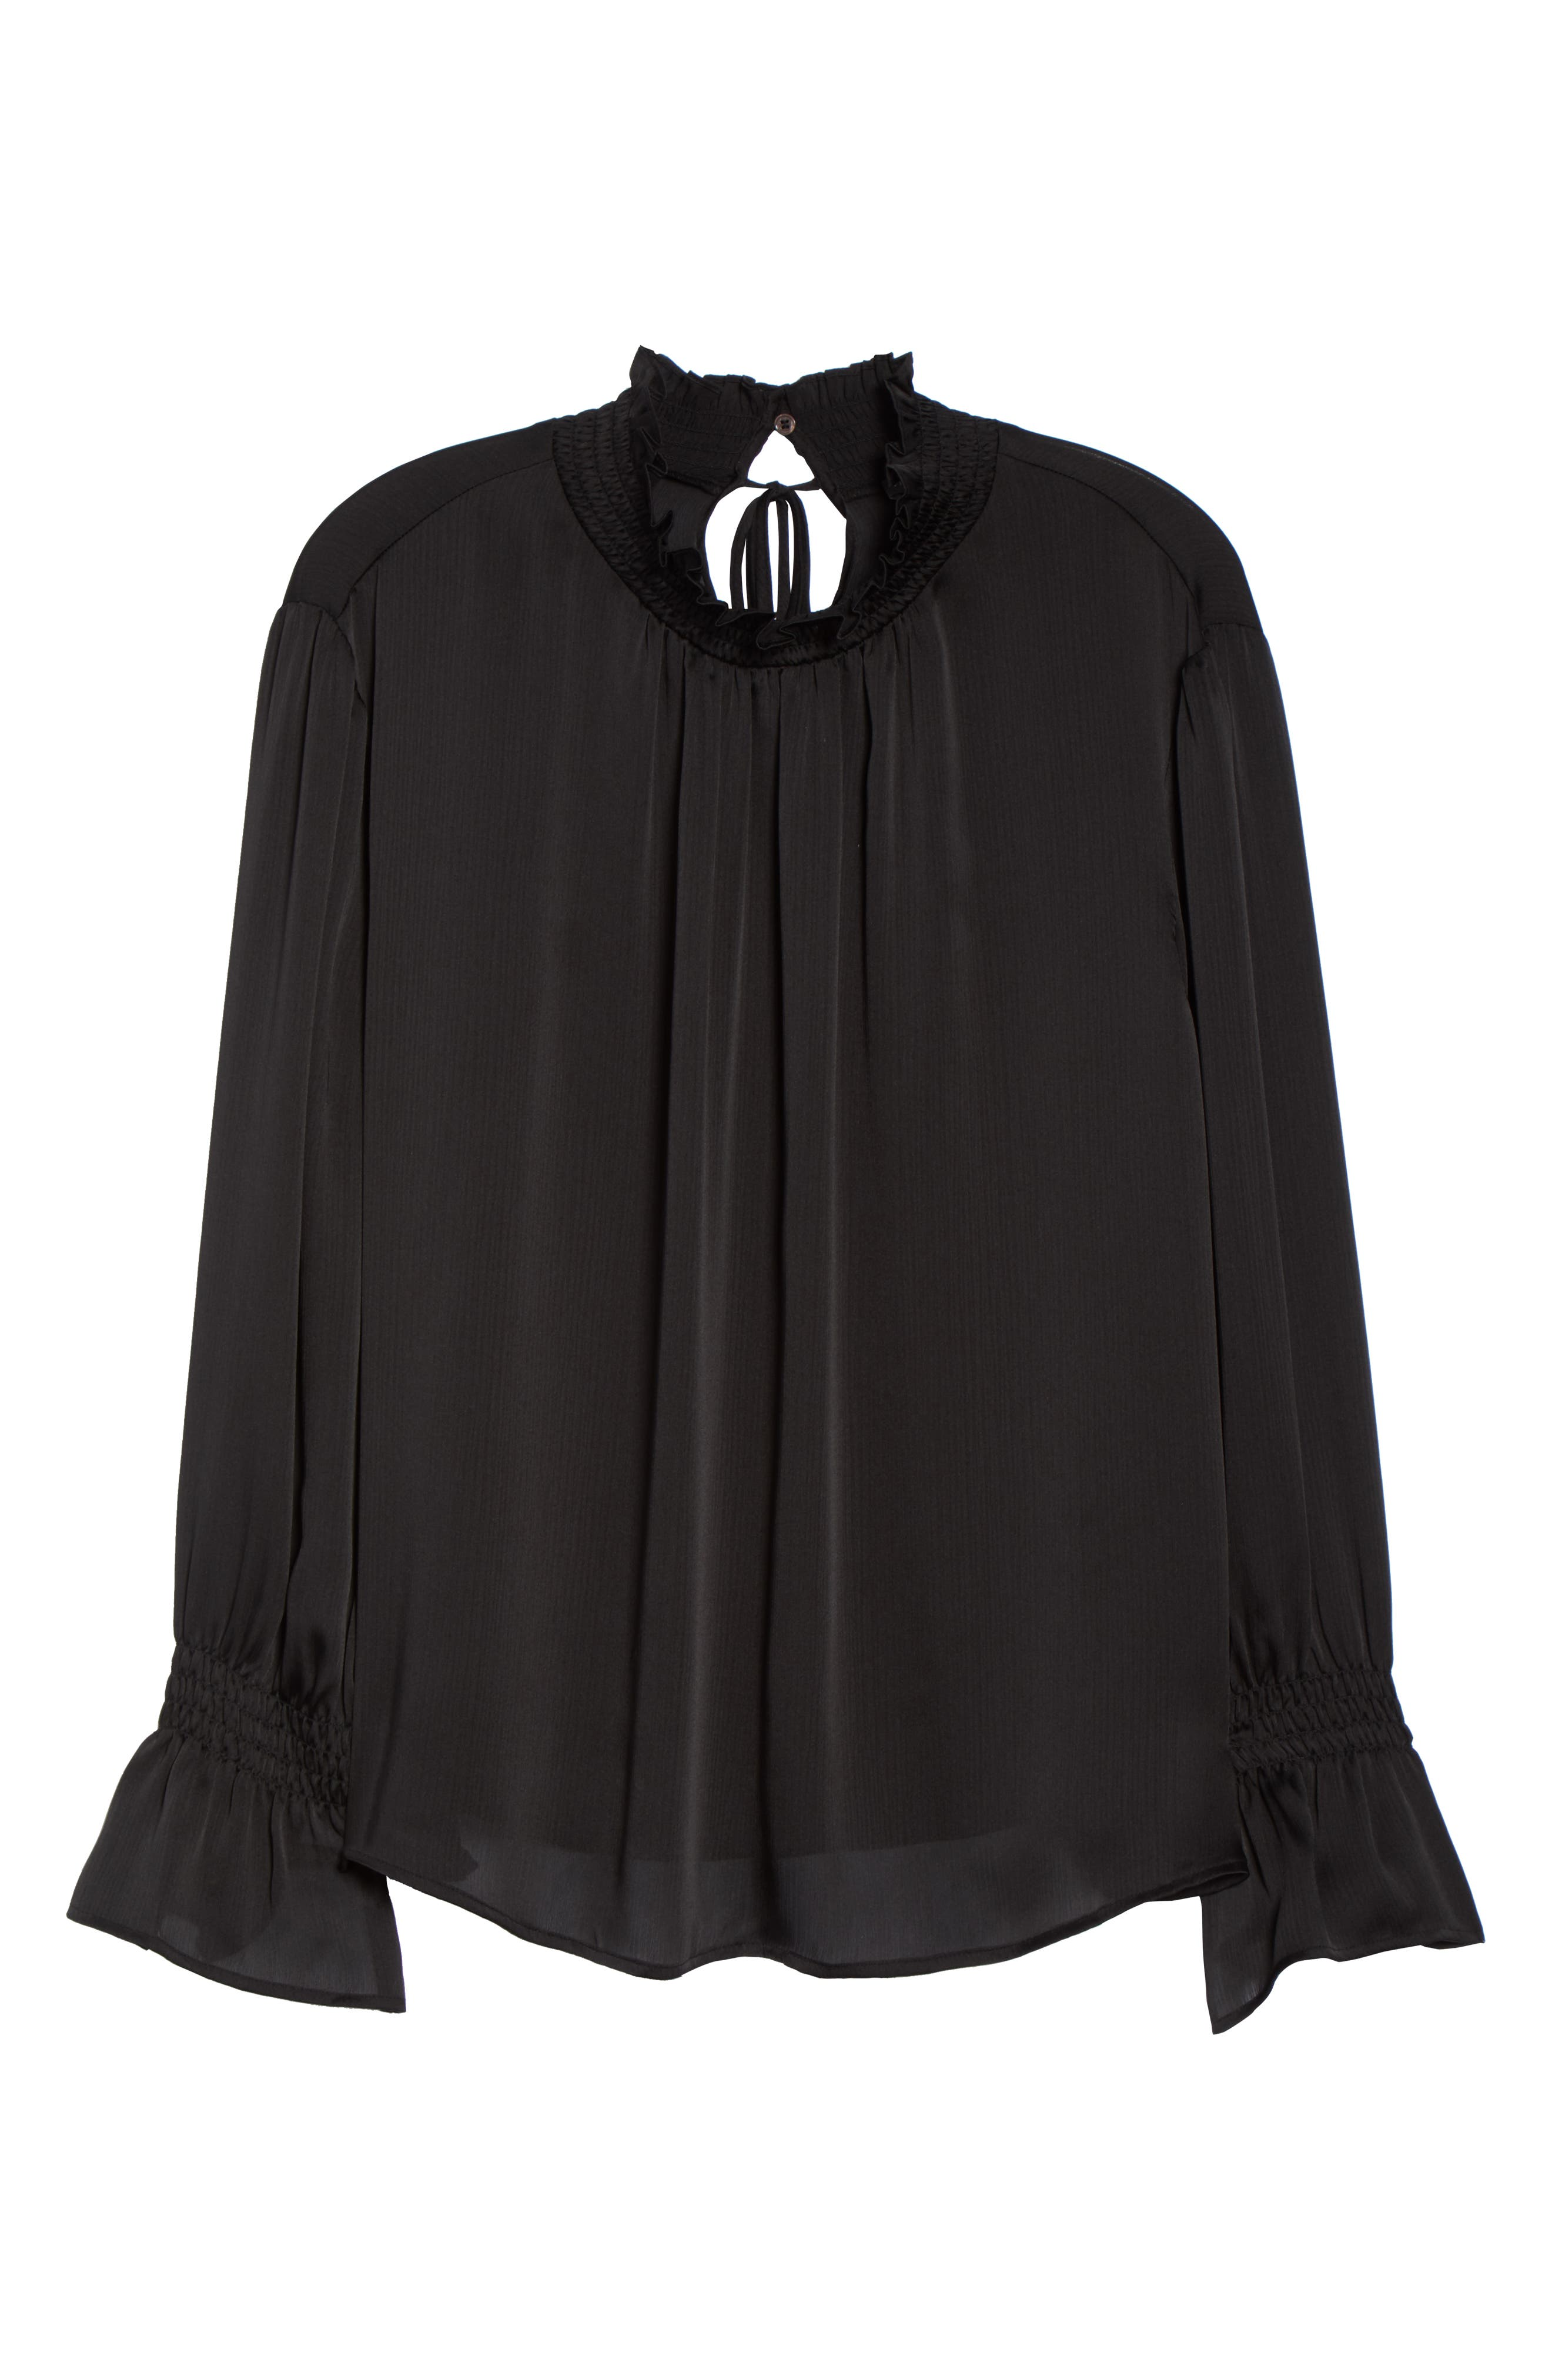 VINCE CAMUTO,                             Flare Tie Cuff Satin Blouse,                             Alternate thumbnail 6, color,                             004